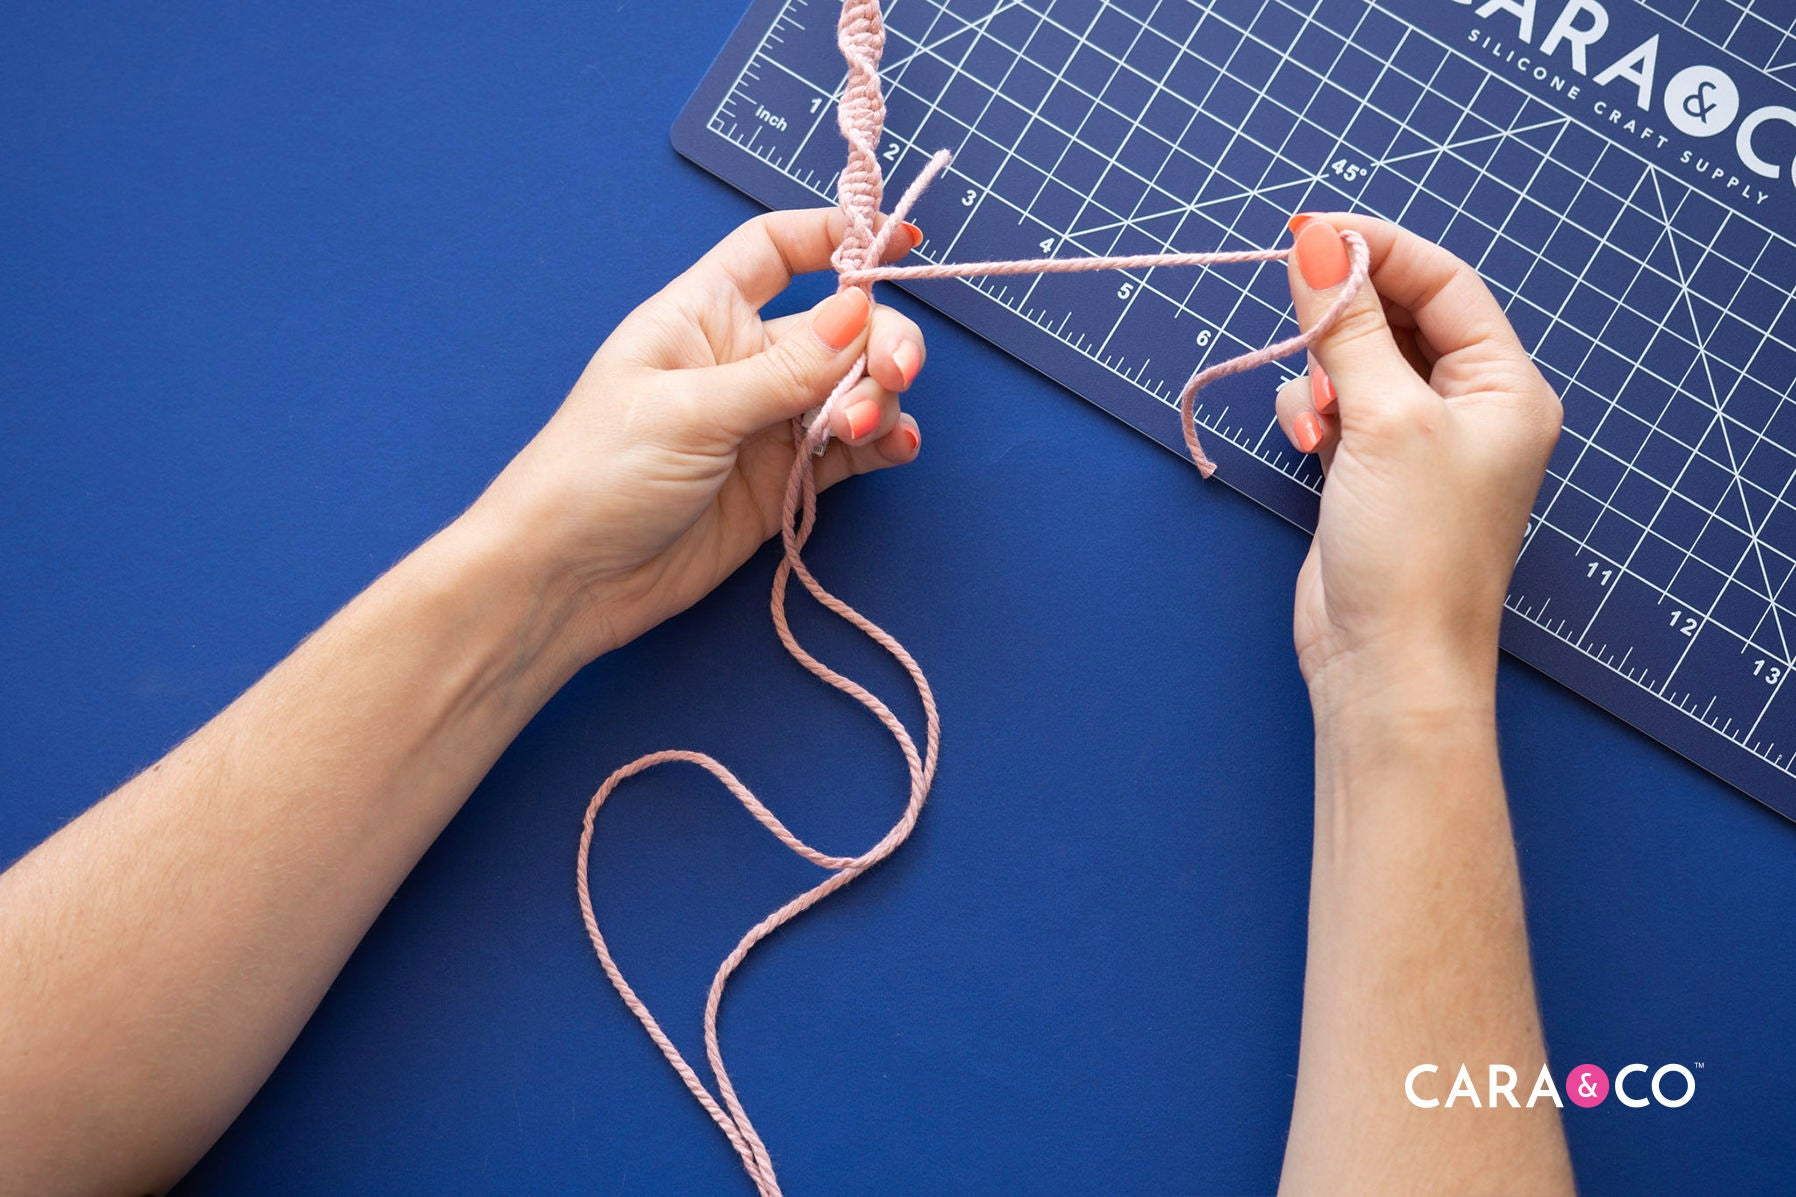 Easy macrame crafts - DIY phone charger cord